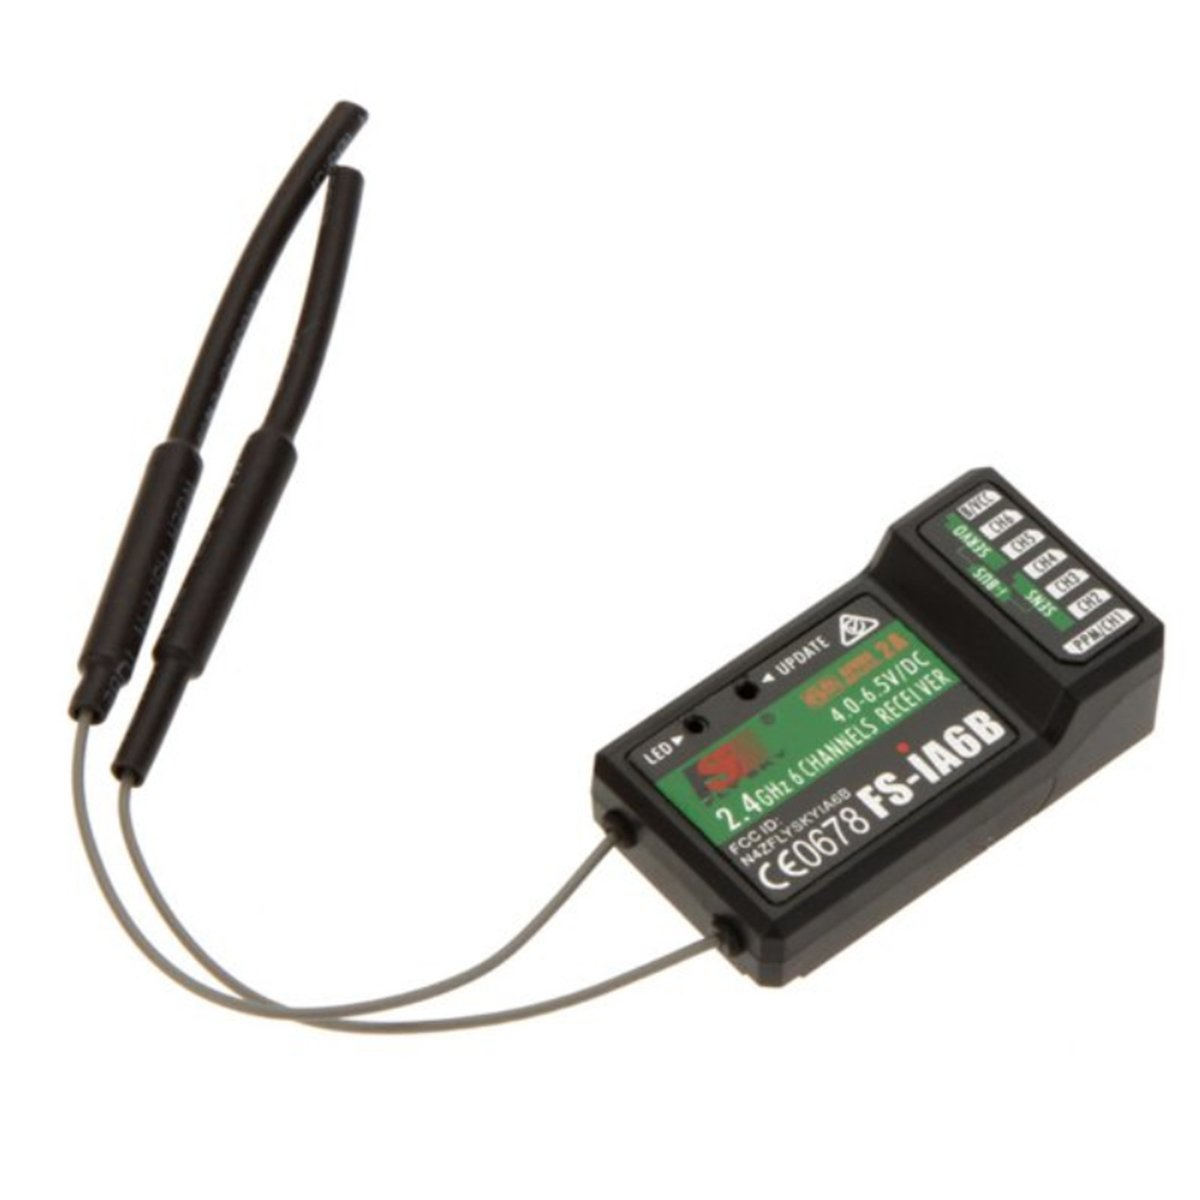 Flysky Fs I6x 10ch 24ghz Afhds Rc Transmitter W And Are More Functional Than A Basic 4 Or 5 Channel Ia6b Receiver Toys Games